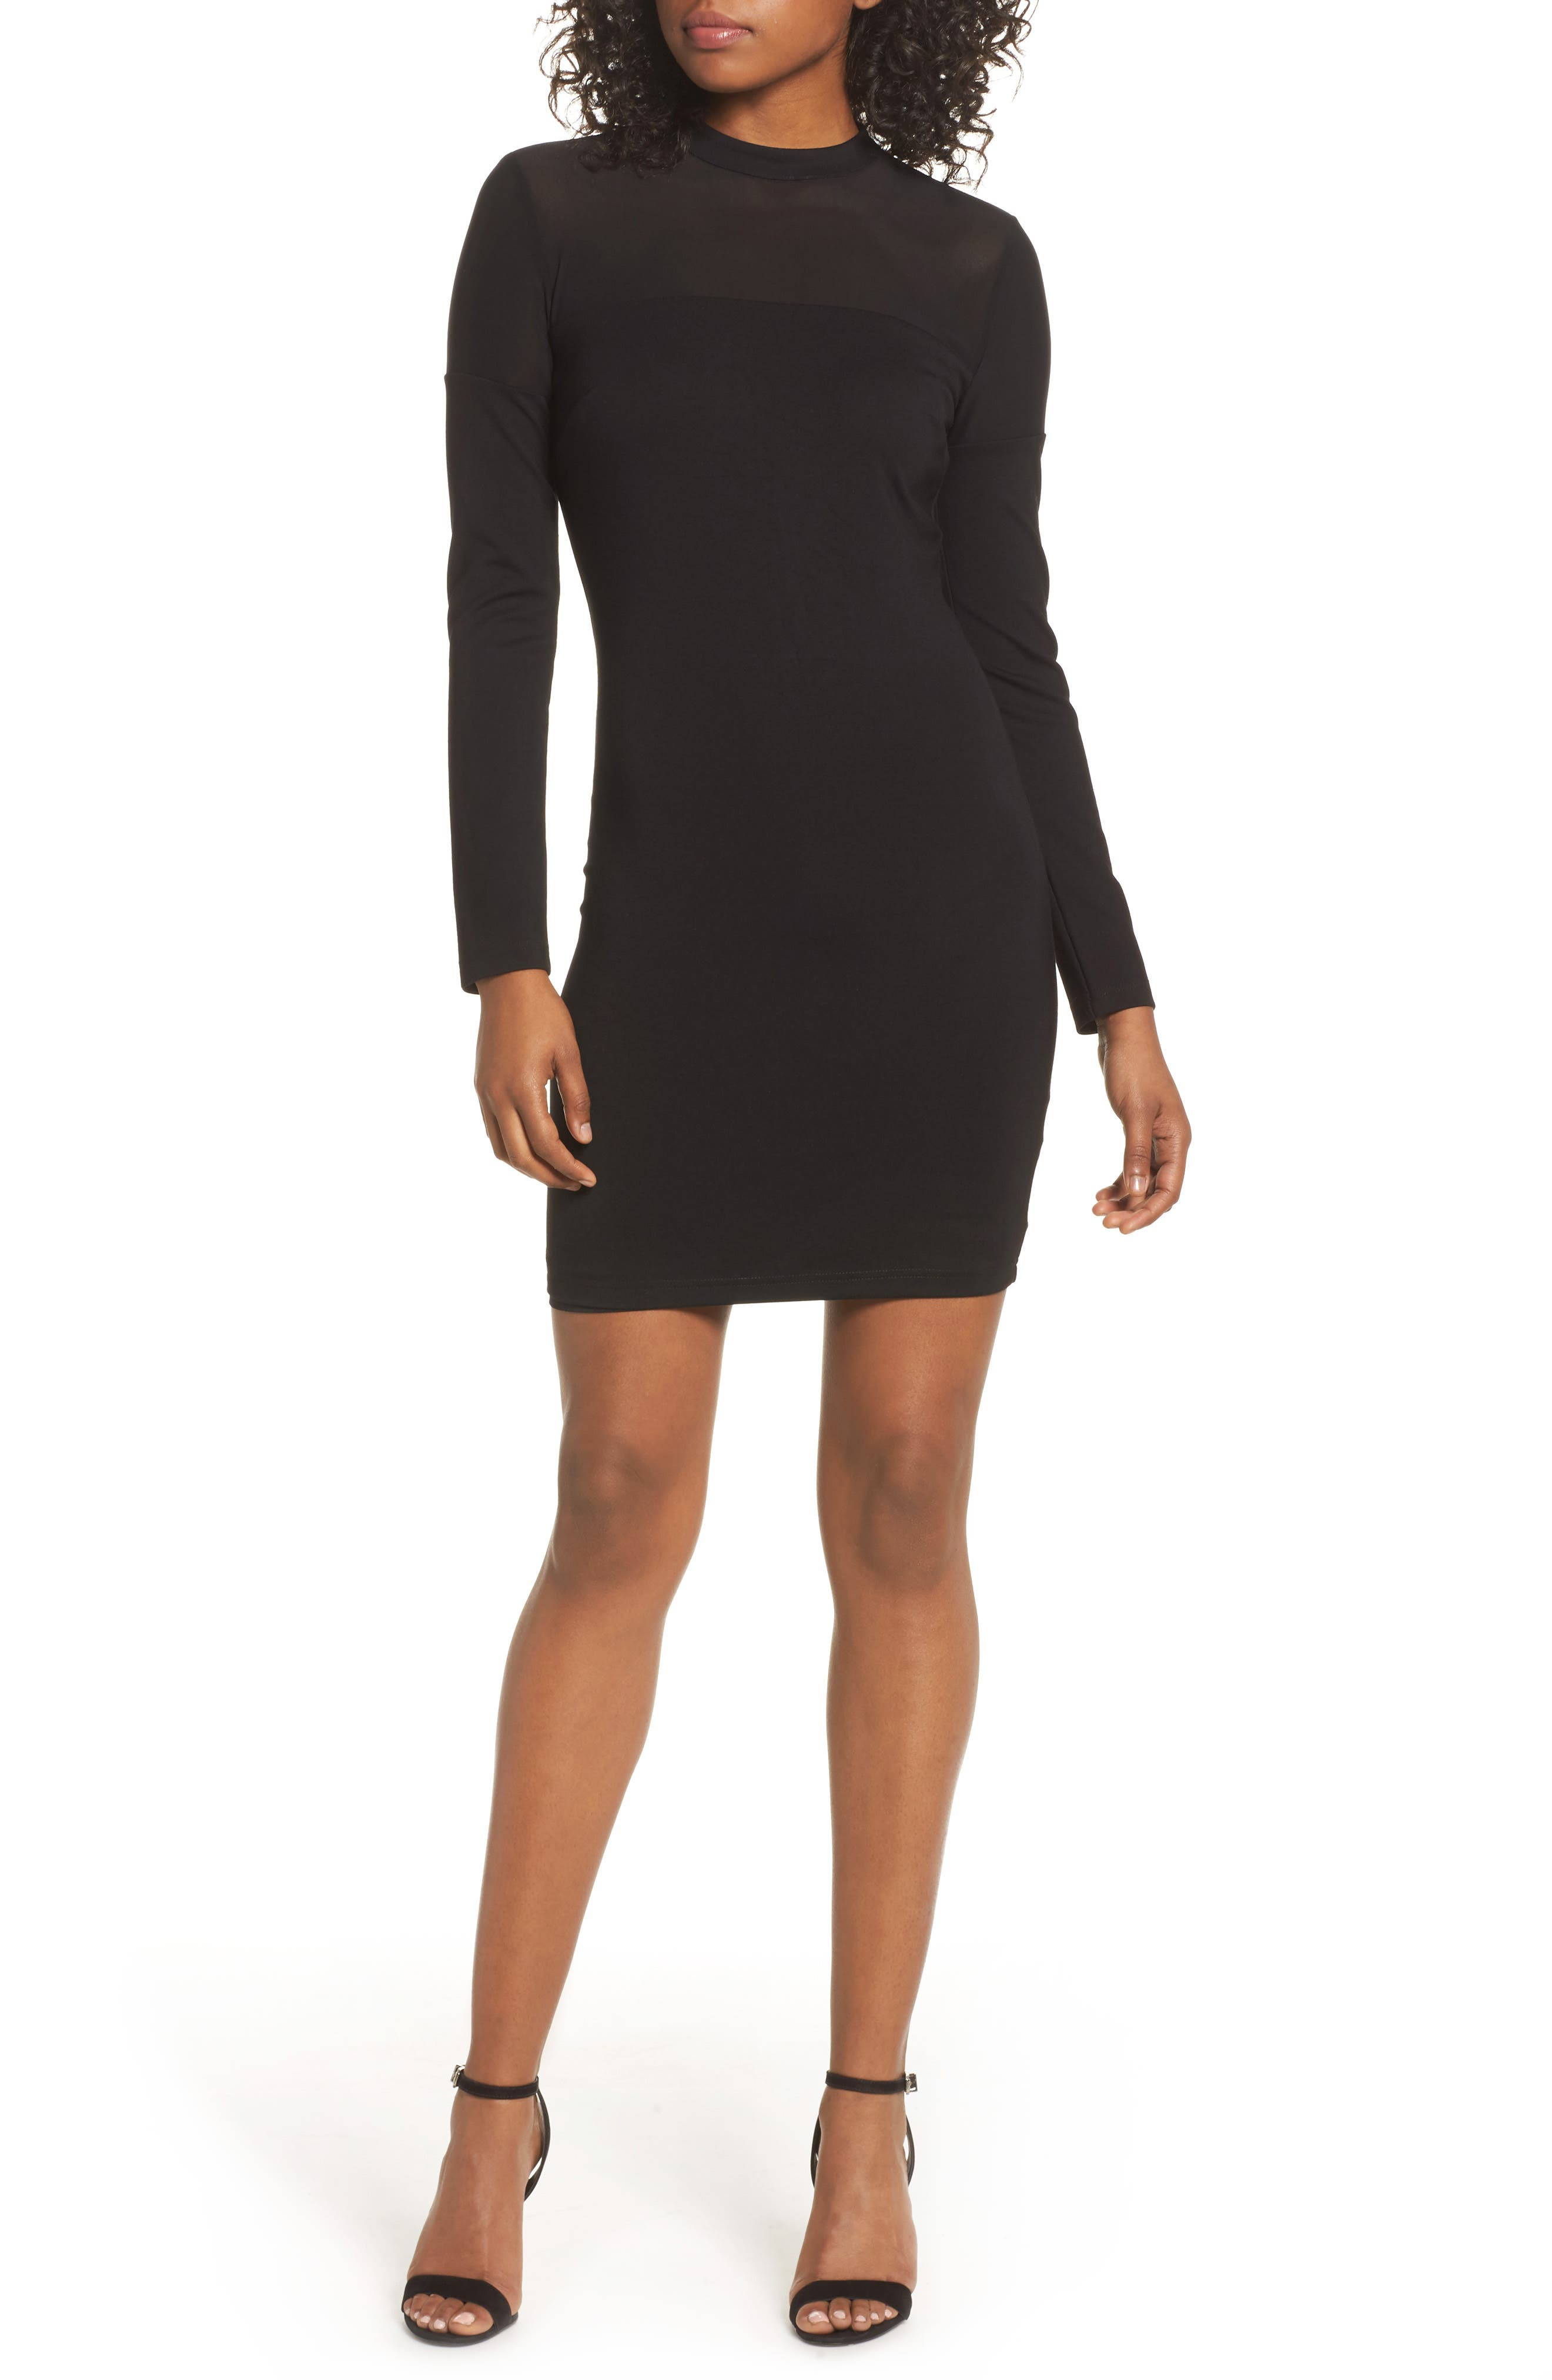 Outlaws Minidress,                         Main,                         color,